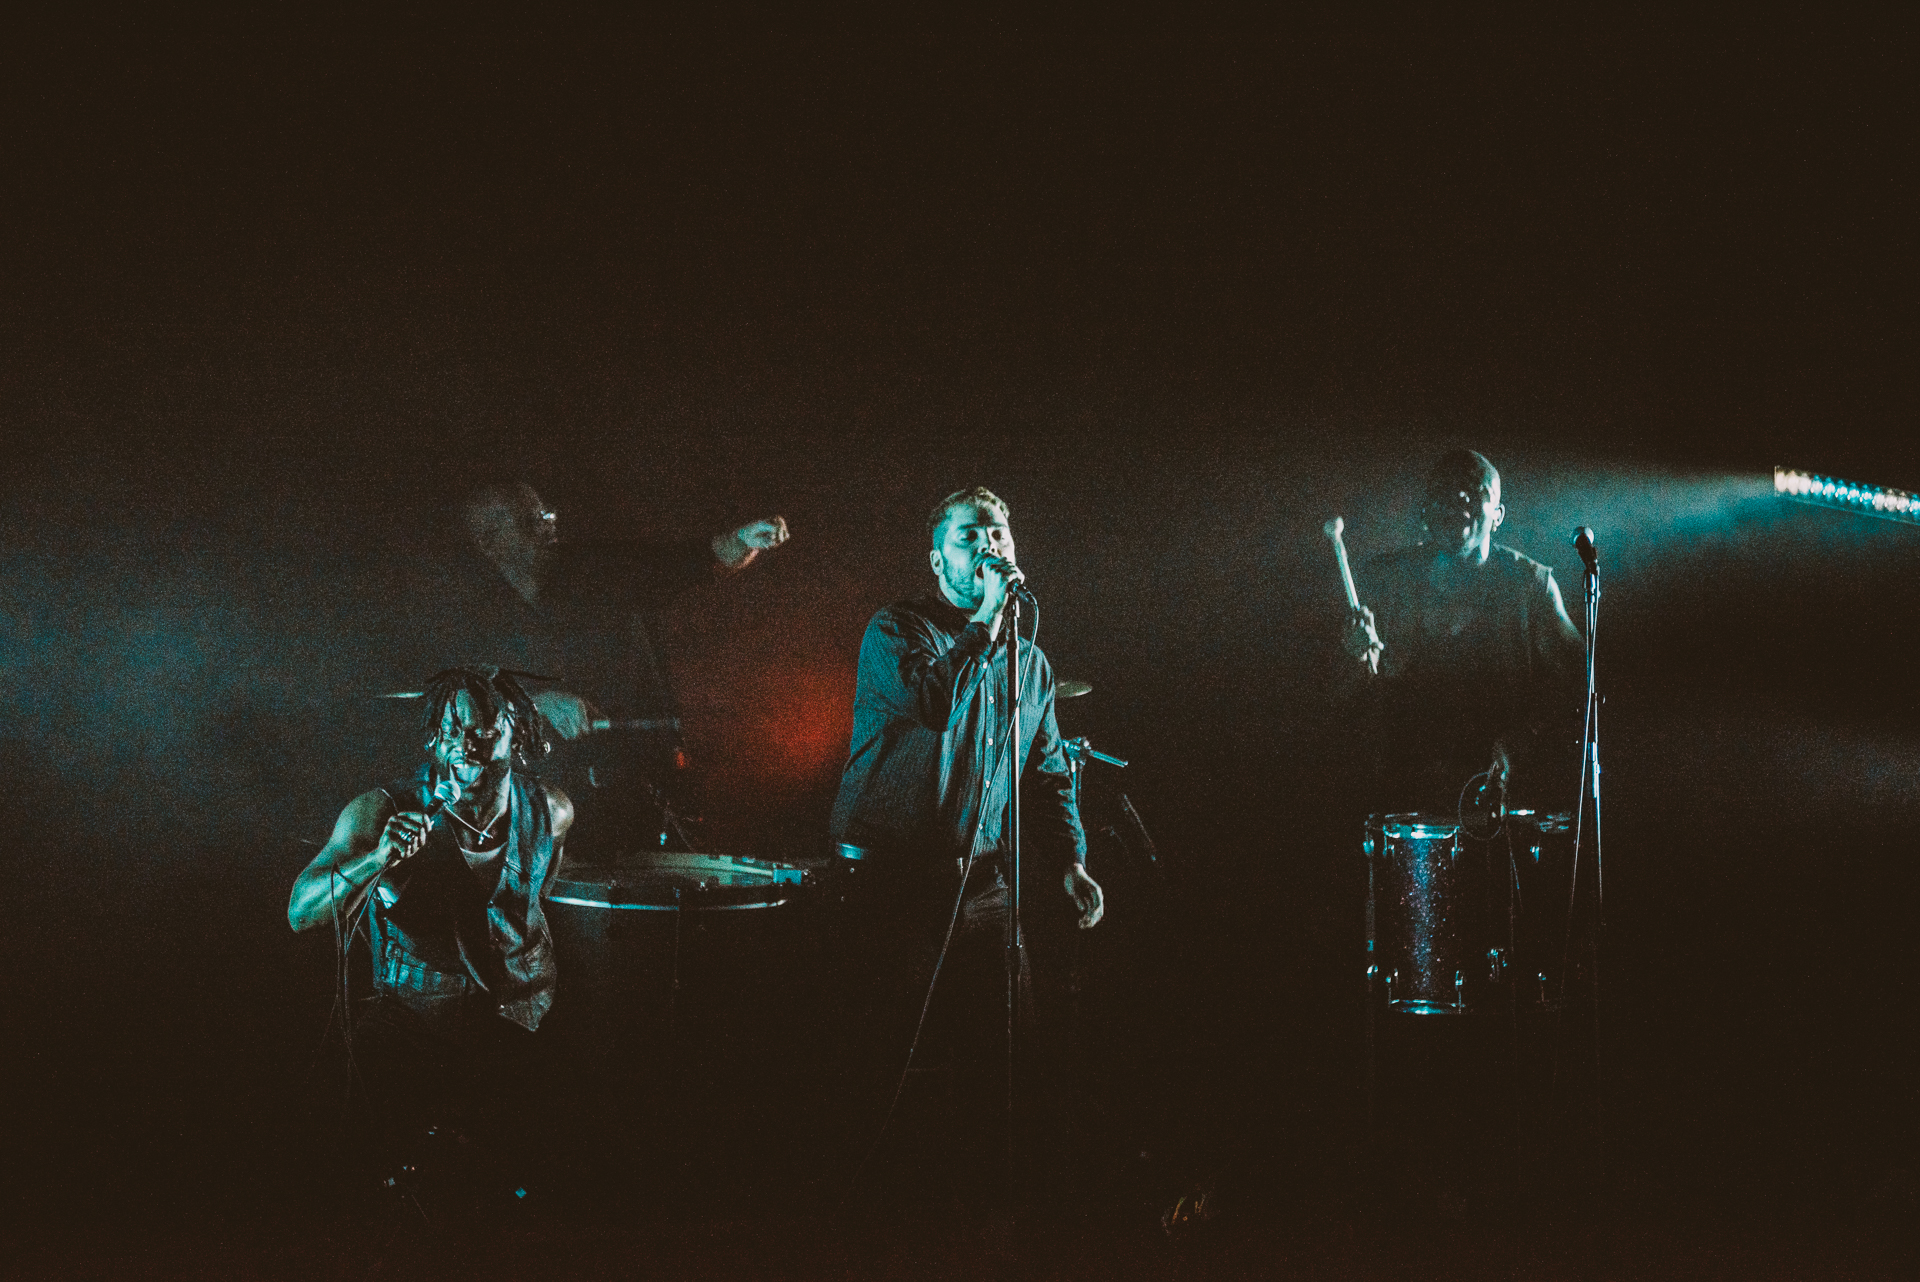 1_Young_Fathers-VENUE-Timothy_Nguyen-20181117 (19 of 23).jpg